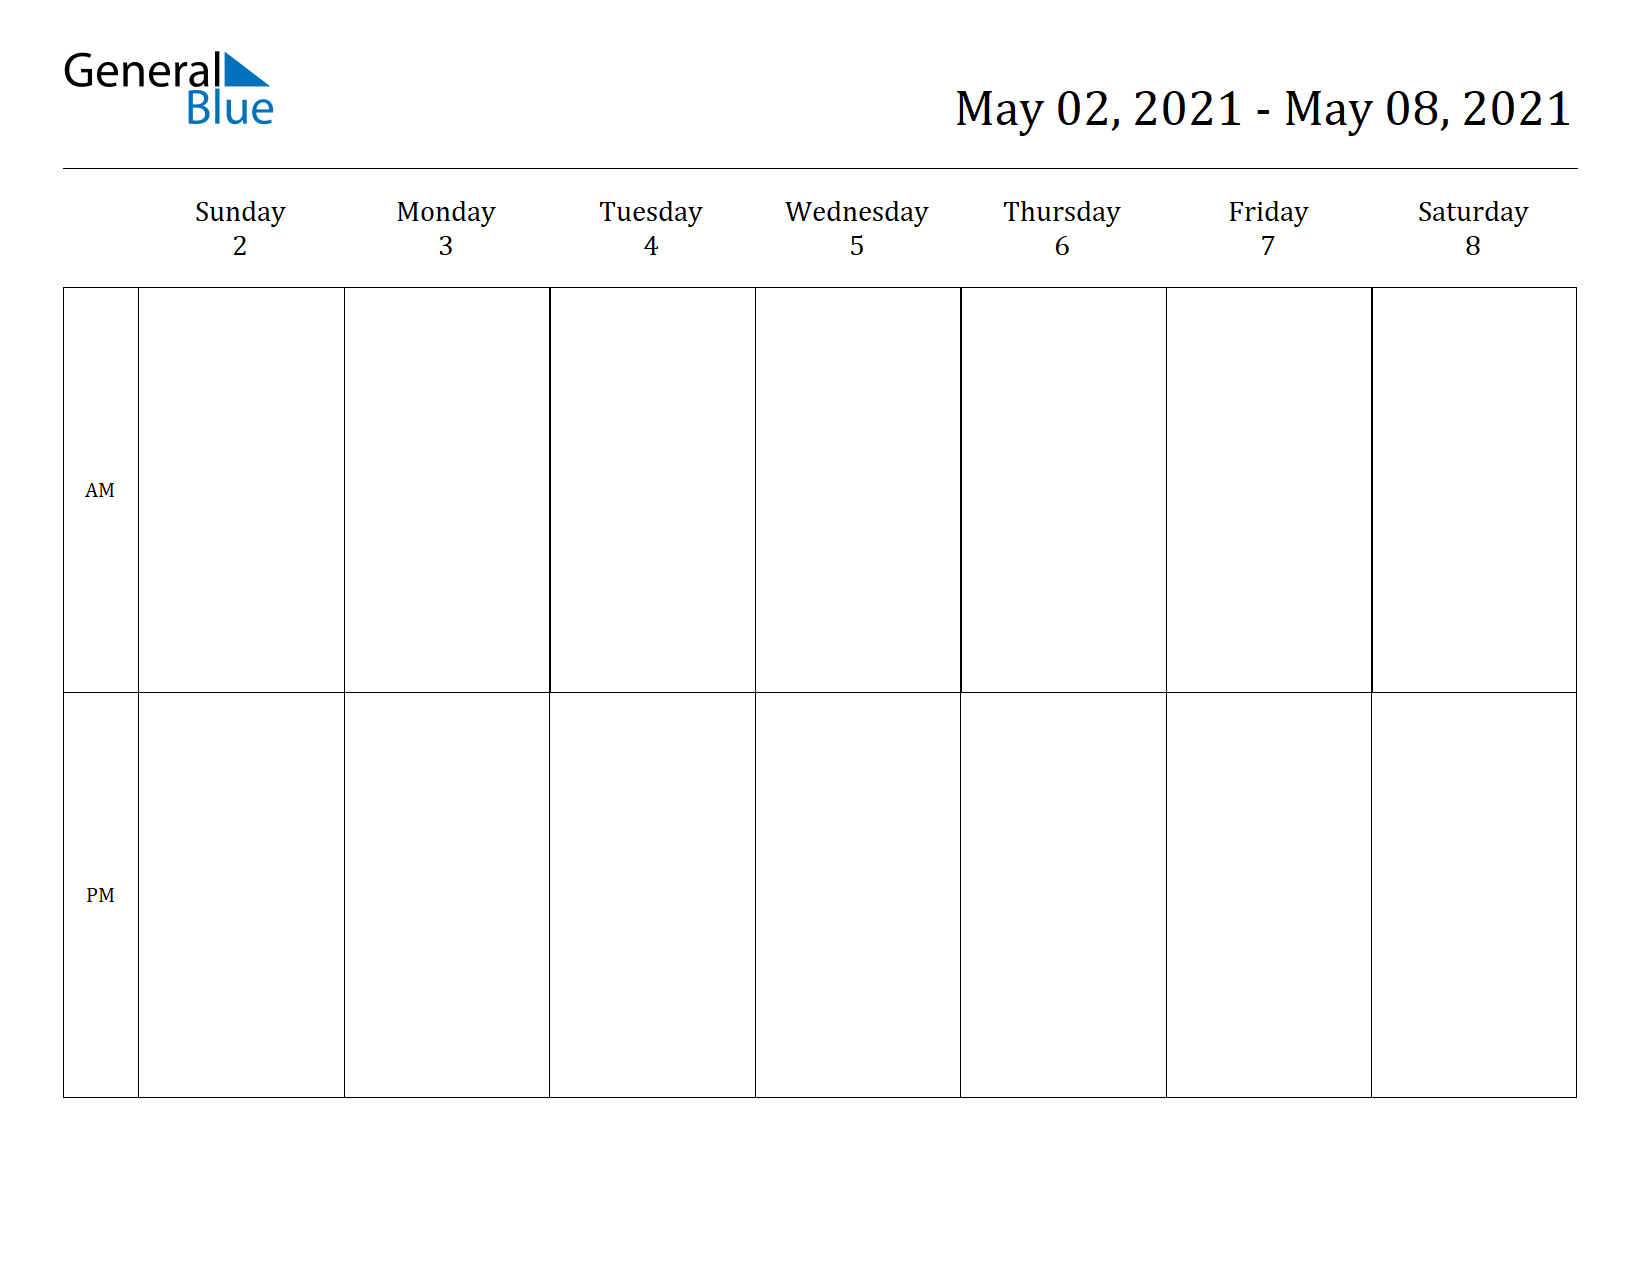 Weekly Calendar for May 02, 2021 to May 08, 2021